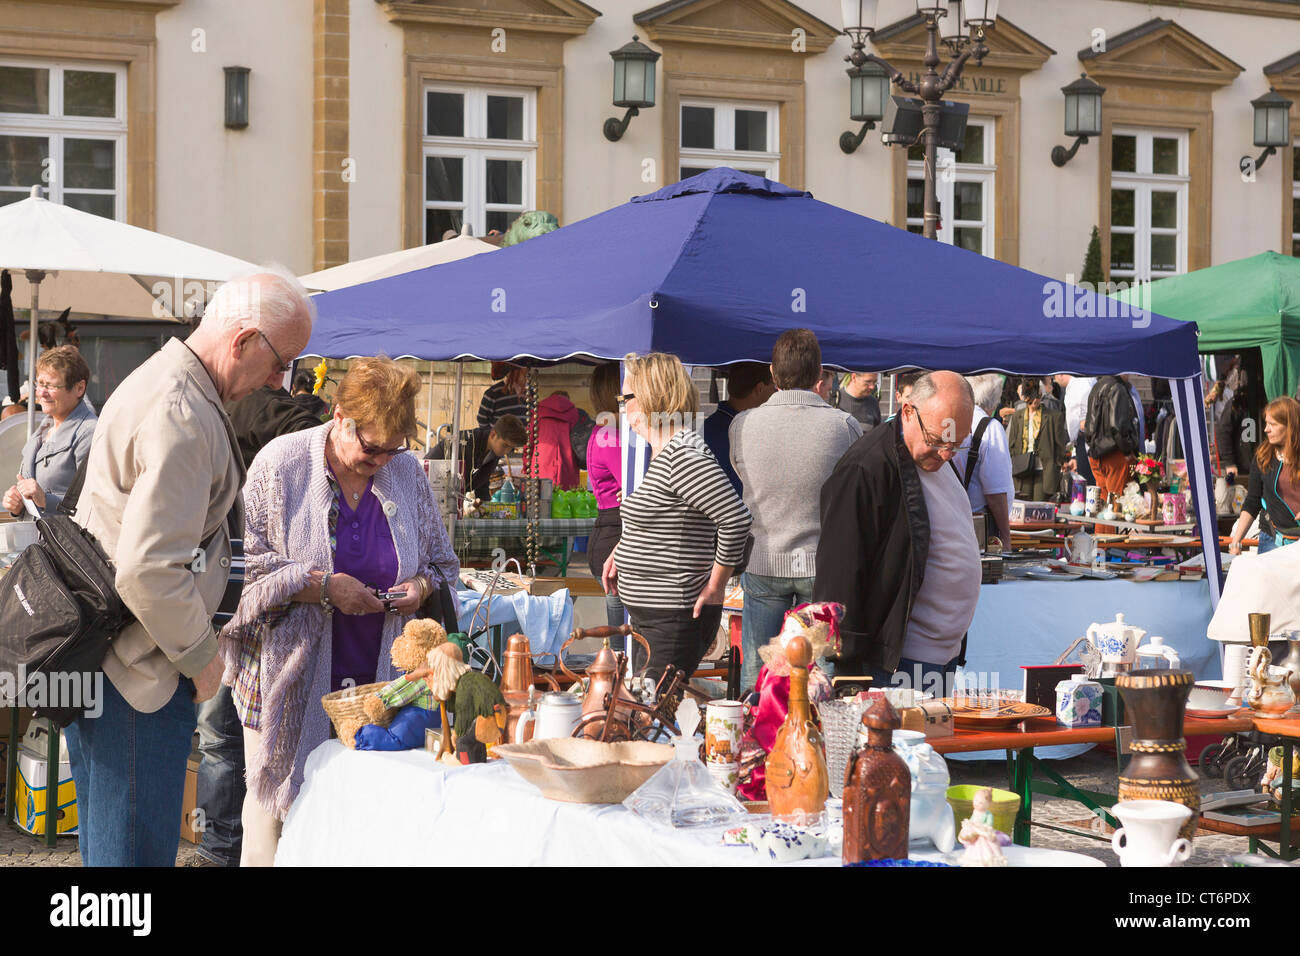 Flea market on Guillaume square (Knuedler) in Luxembourg City - Stock Image